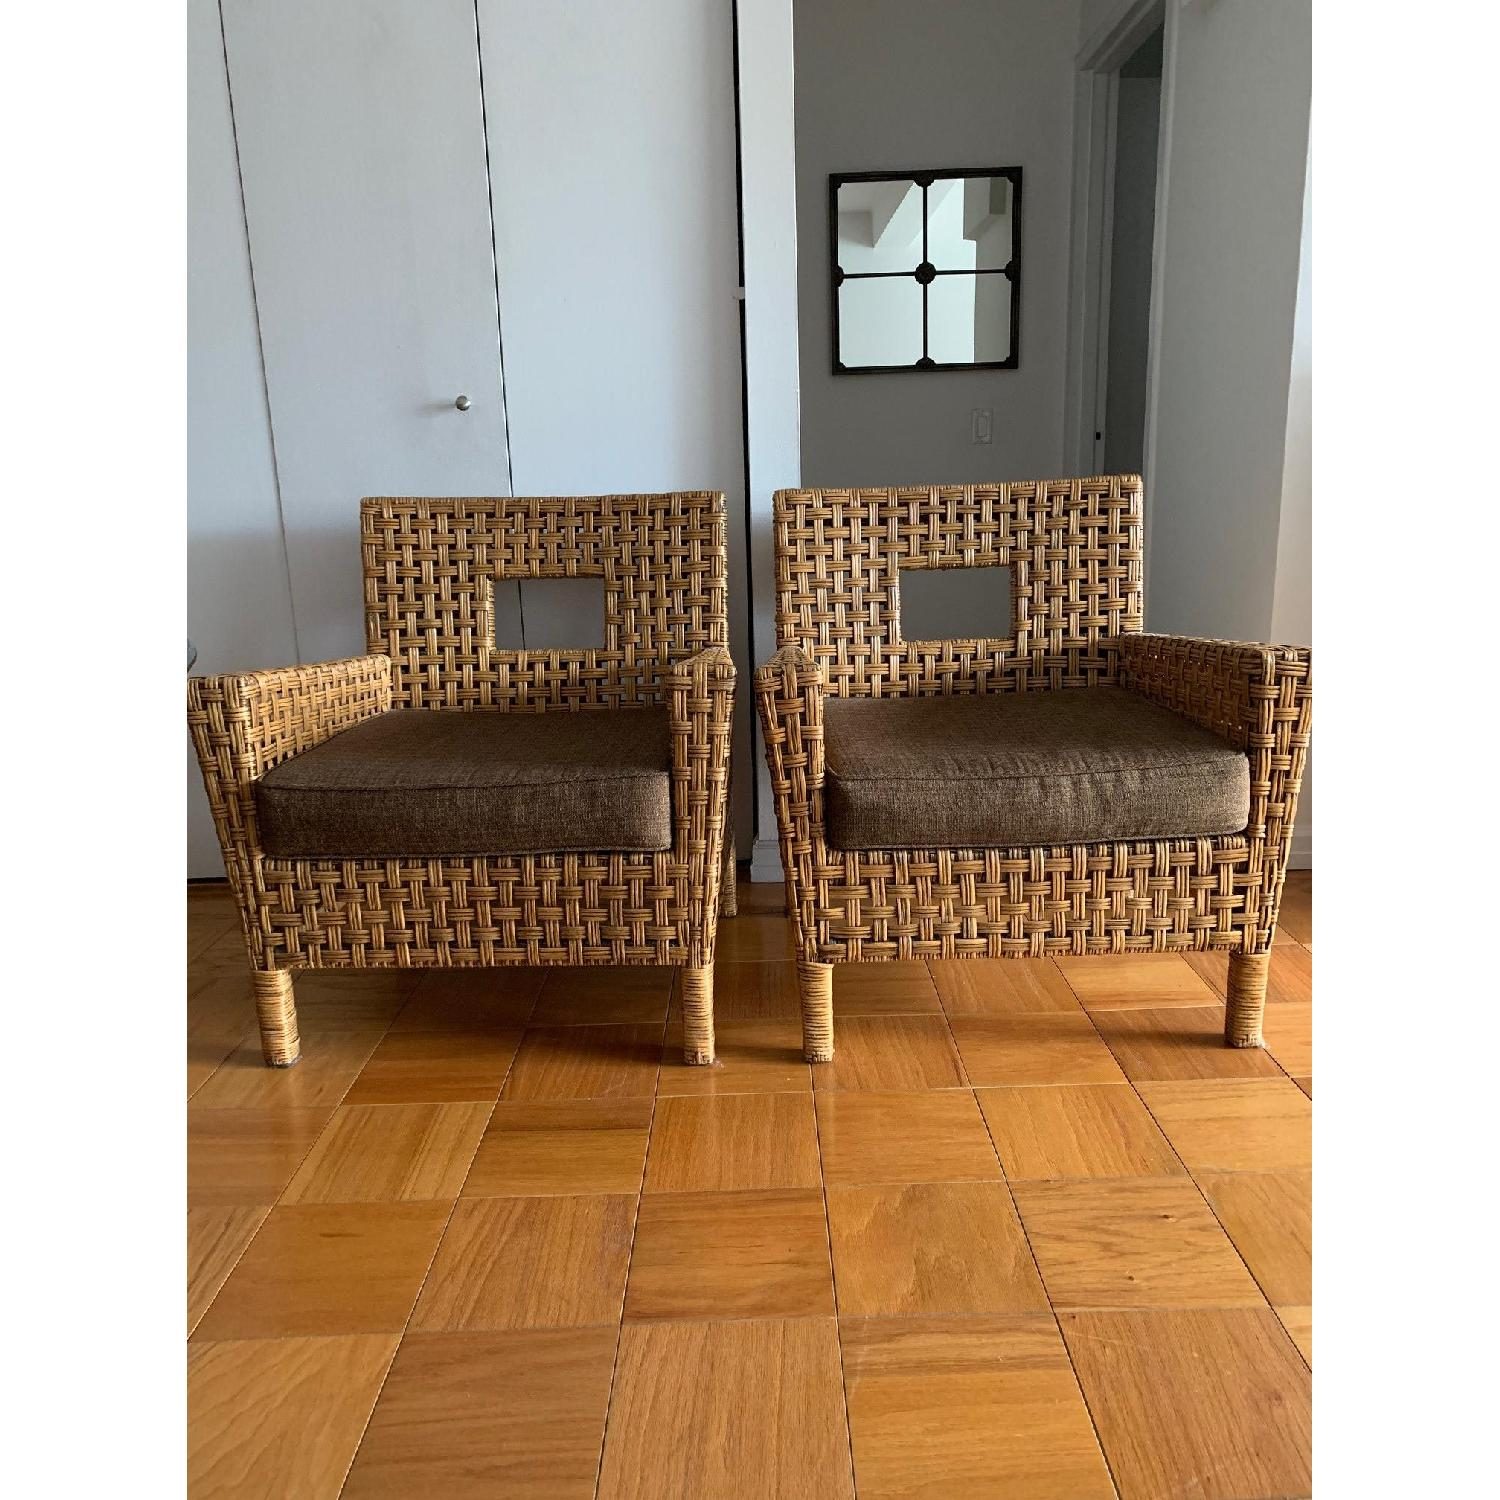 Pier 1 Wicker Chairs w/ Removable Cushions - image-3